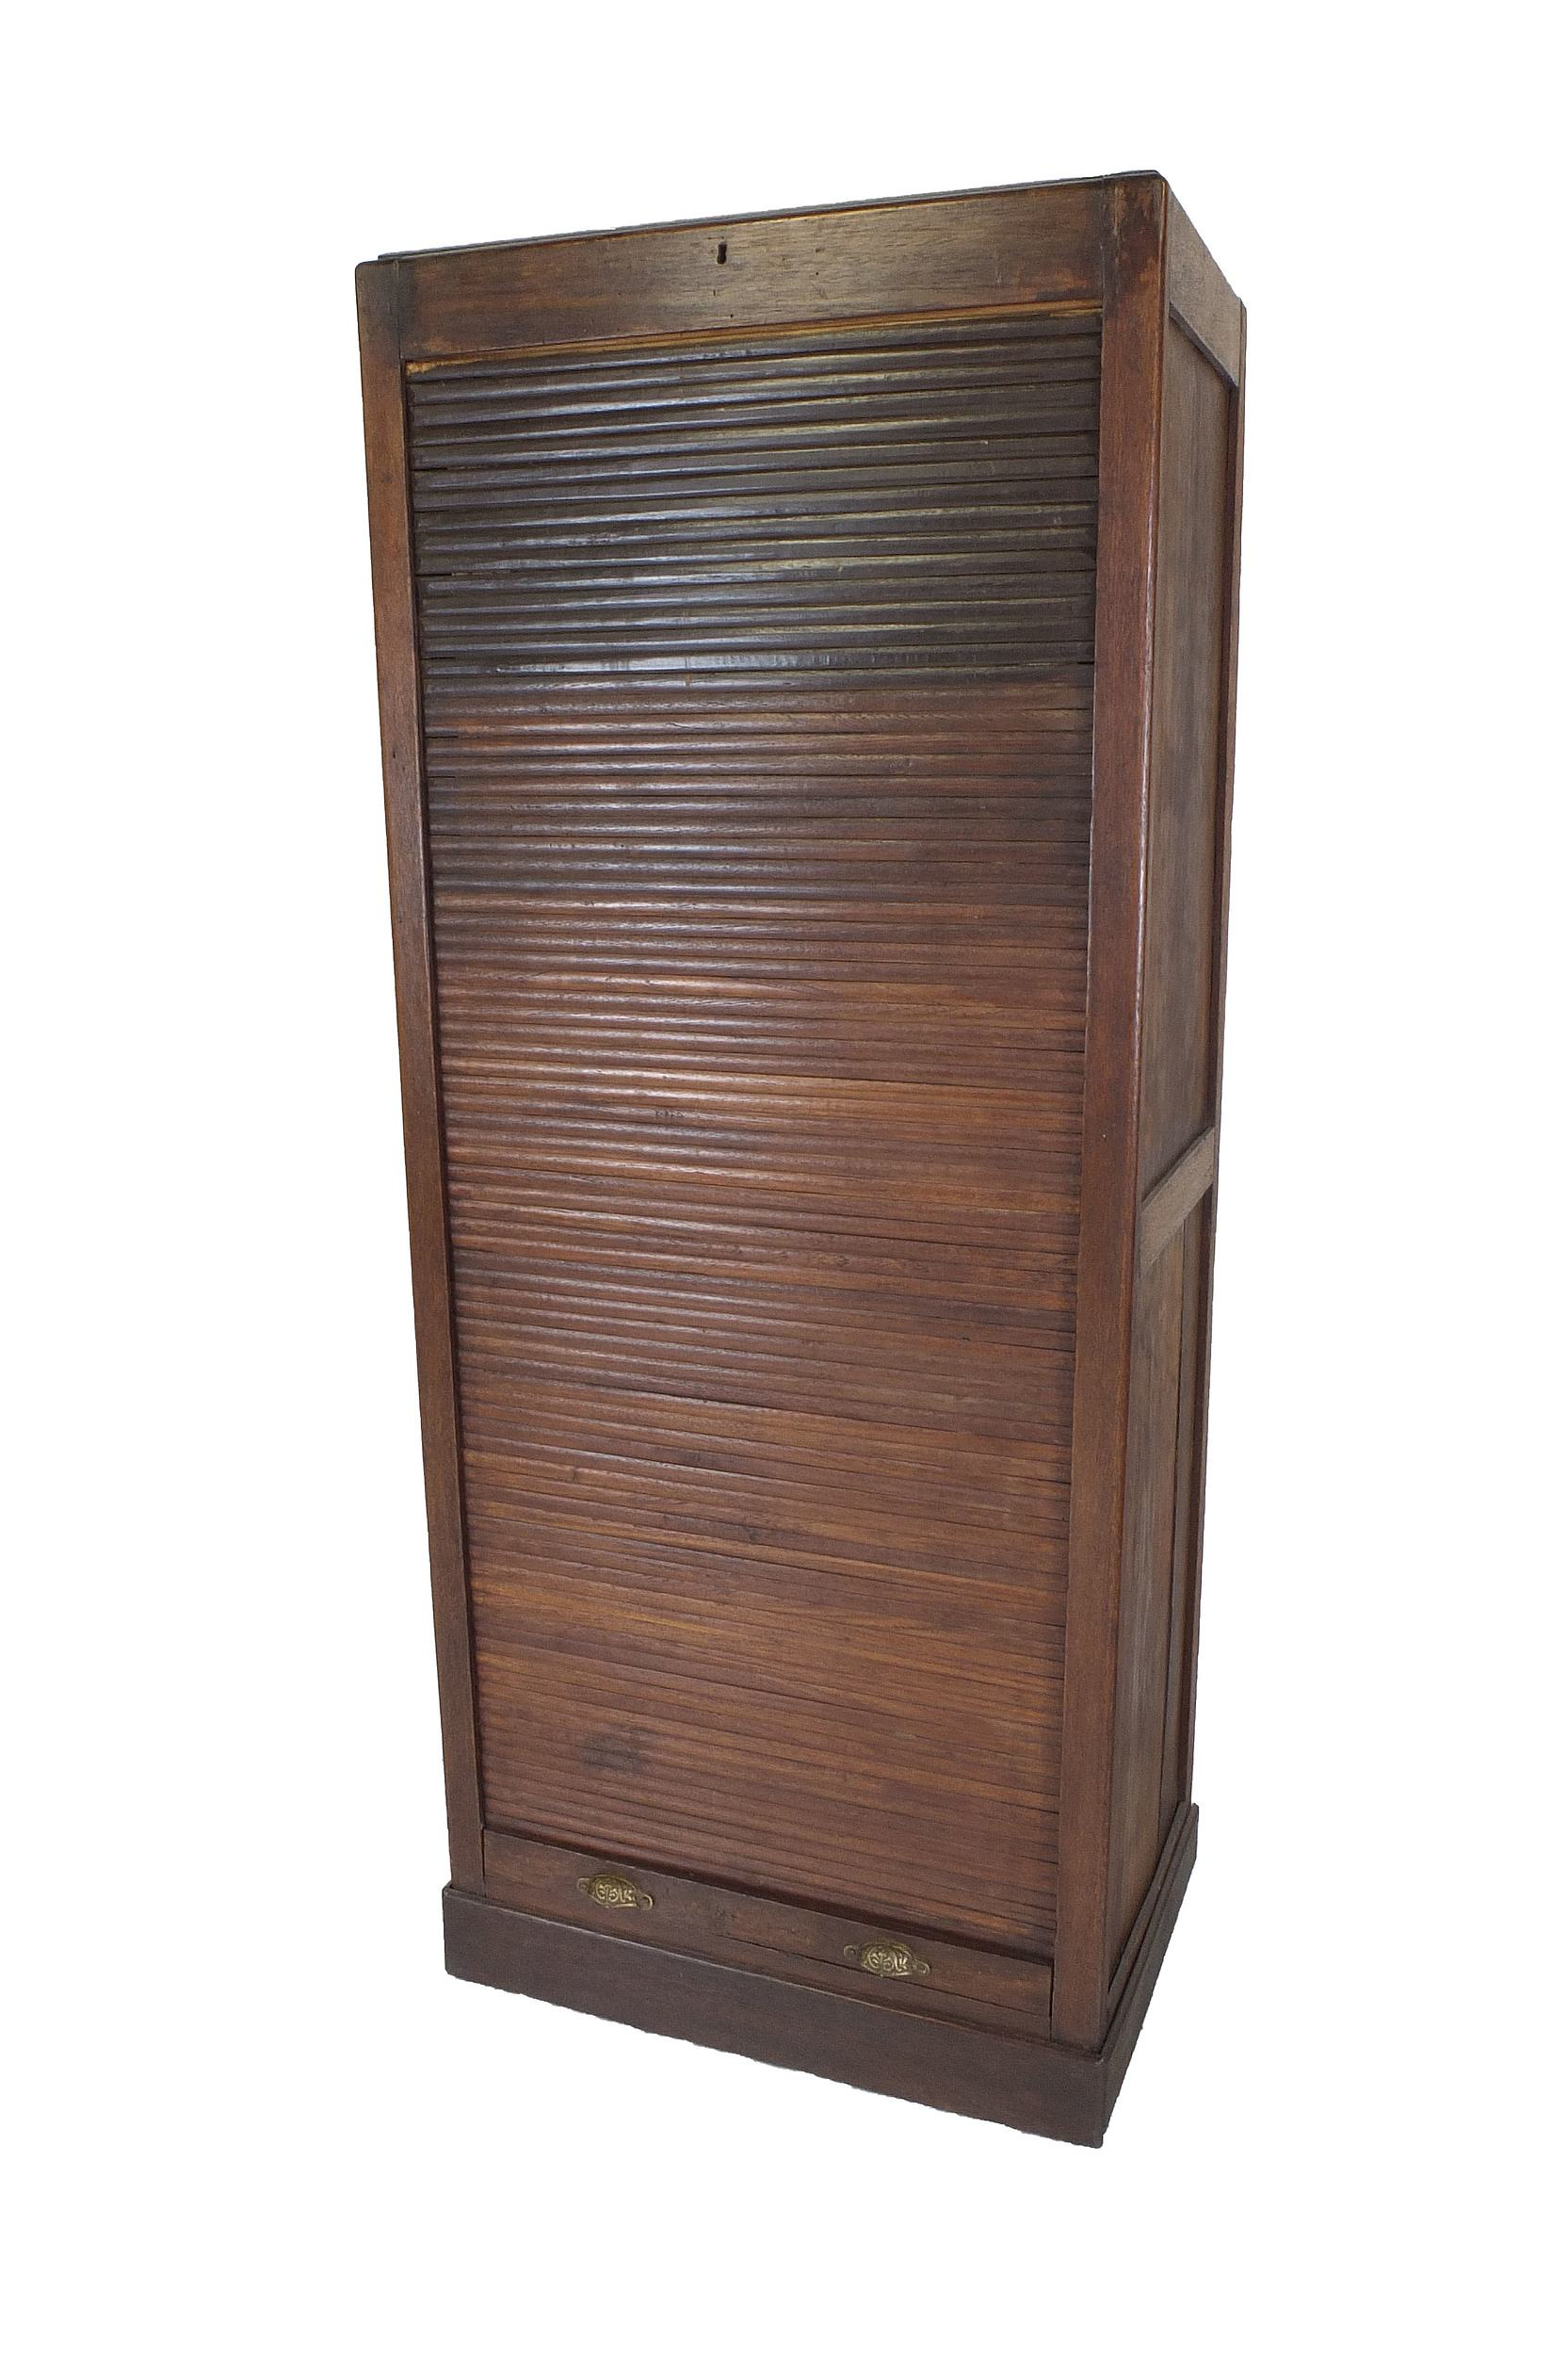 'Antique Tellers Desk with Tambour Shutter'